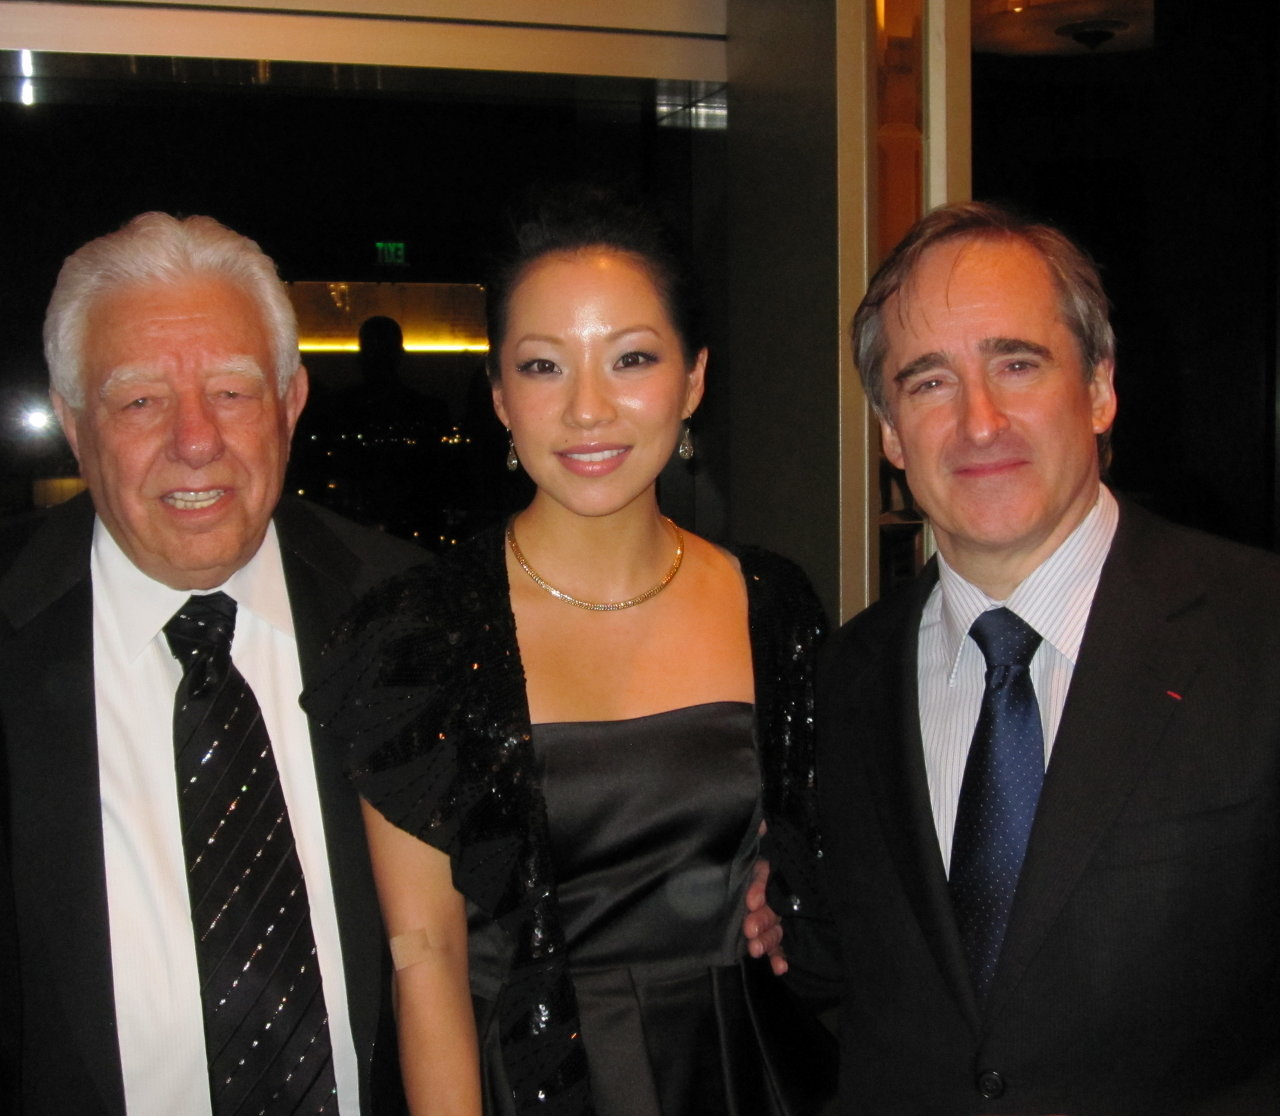 with S.P. Musco and James Conlon